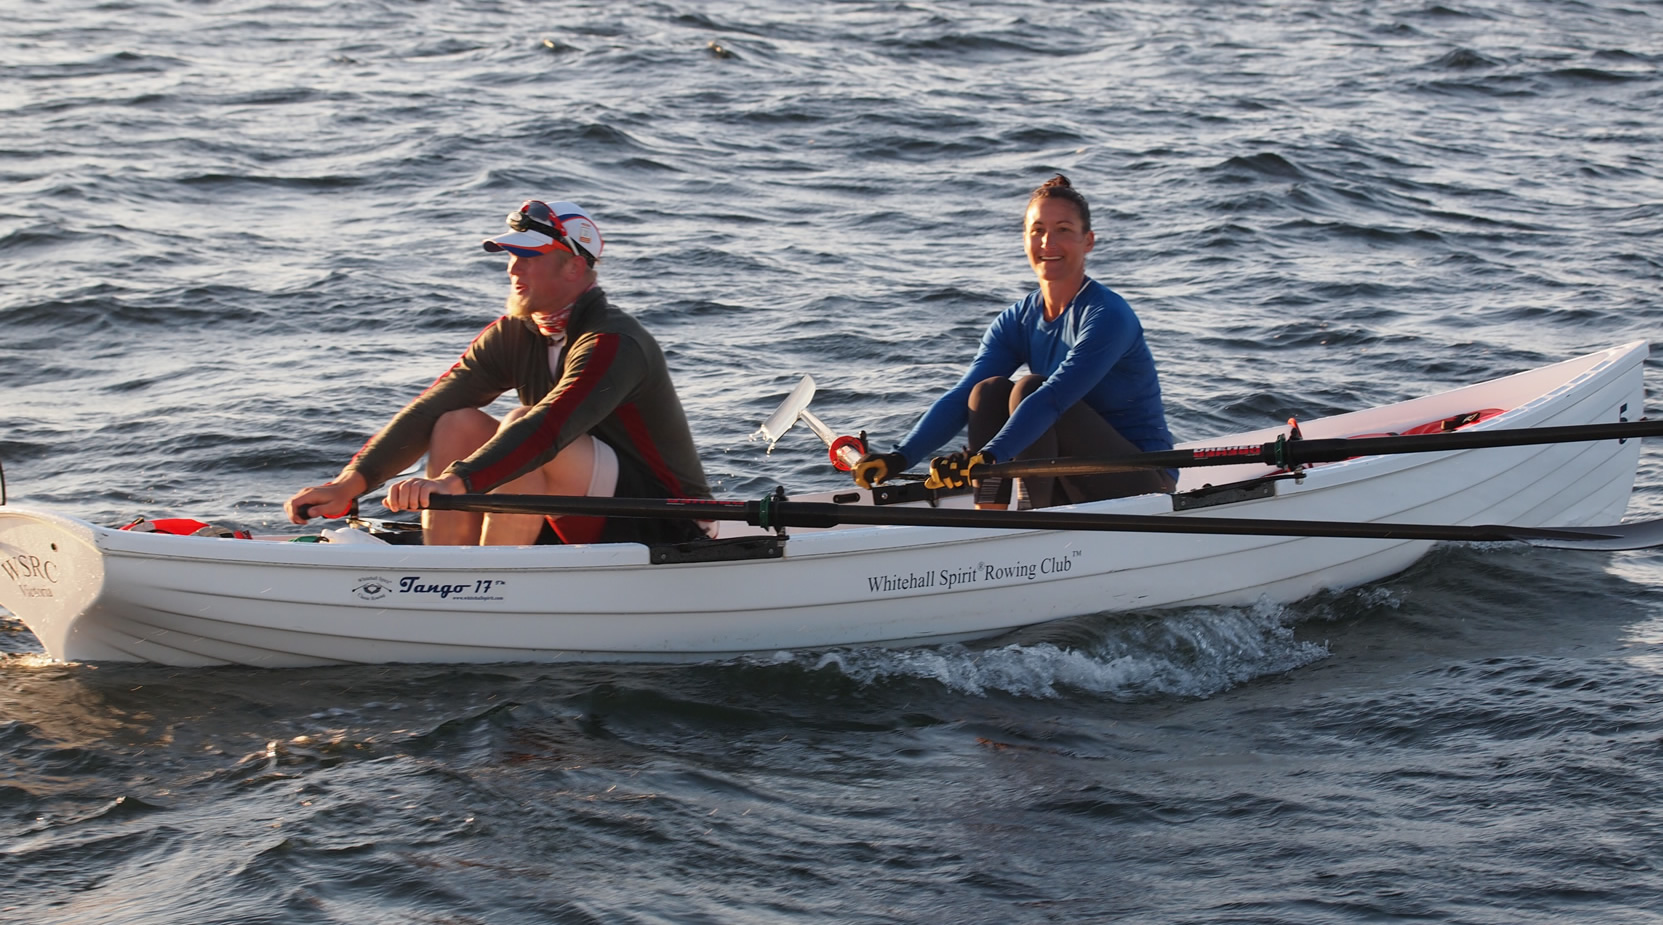 Fitness-Exercise-Tango-17-Rowboat-Whitehall-Rowing-and-Sail-P1012317-Adam-Kreek-Olympian-1663x925